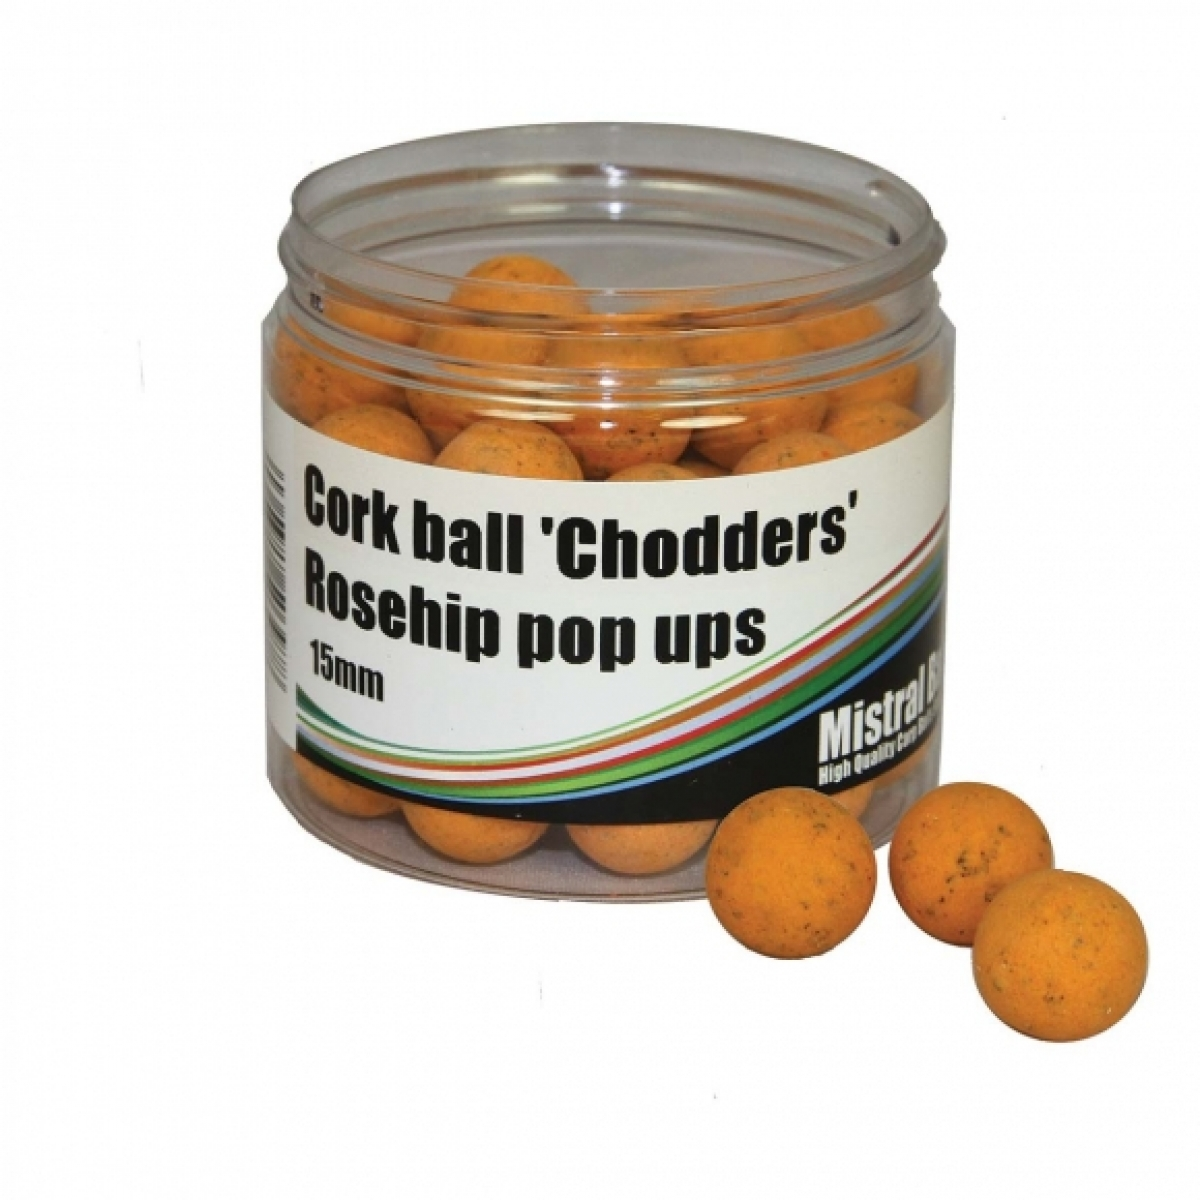 Rosehip Pop Up Cork Ball Chodders